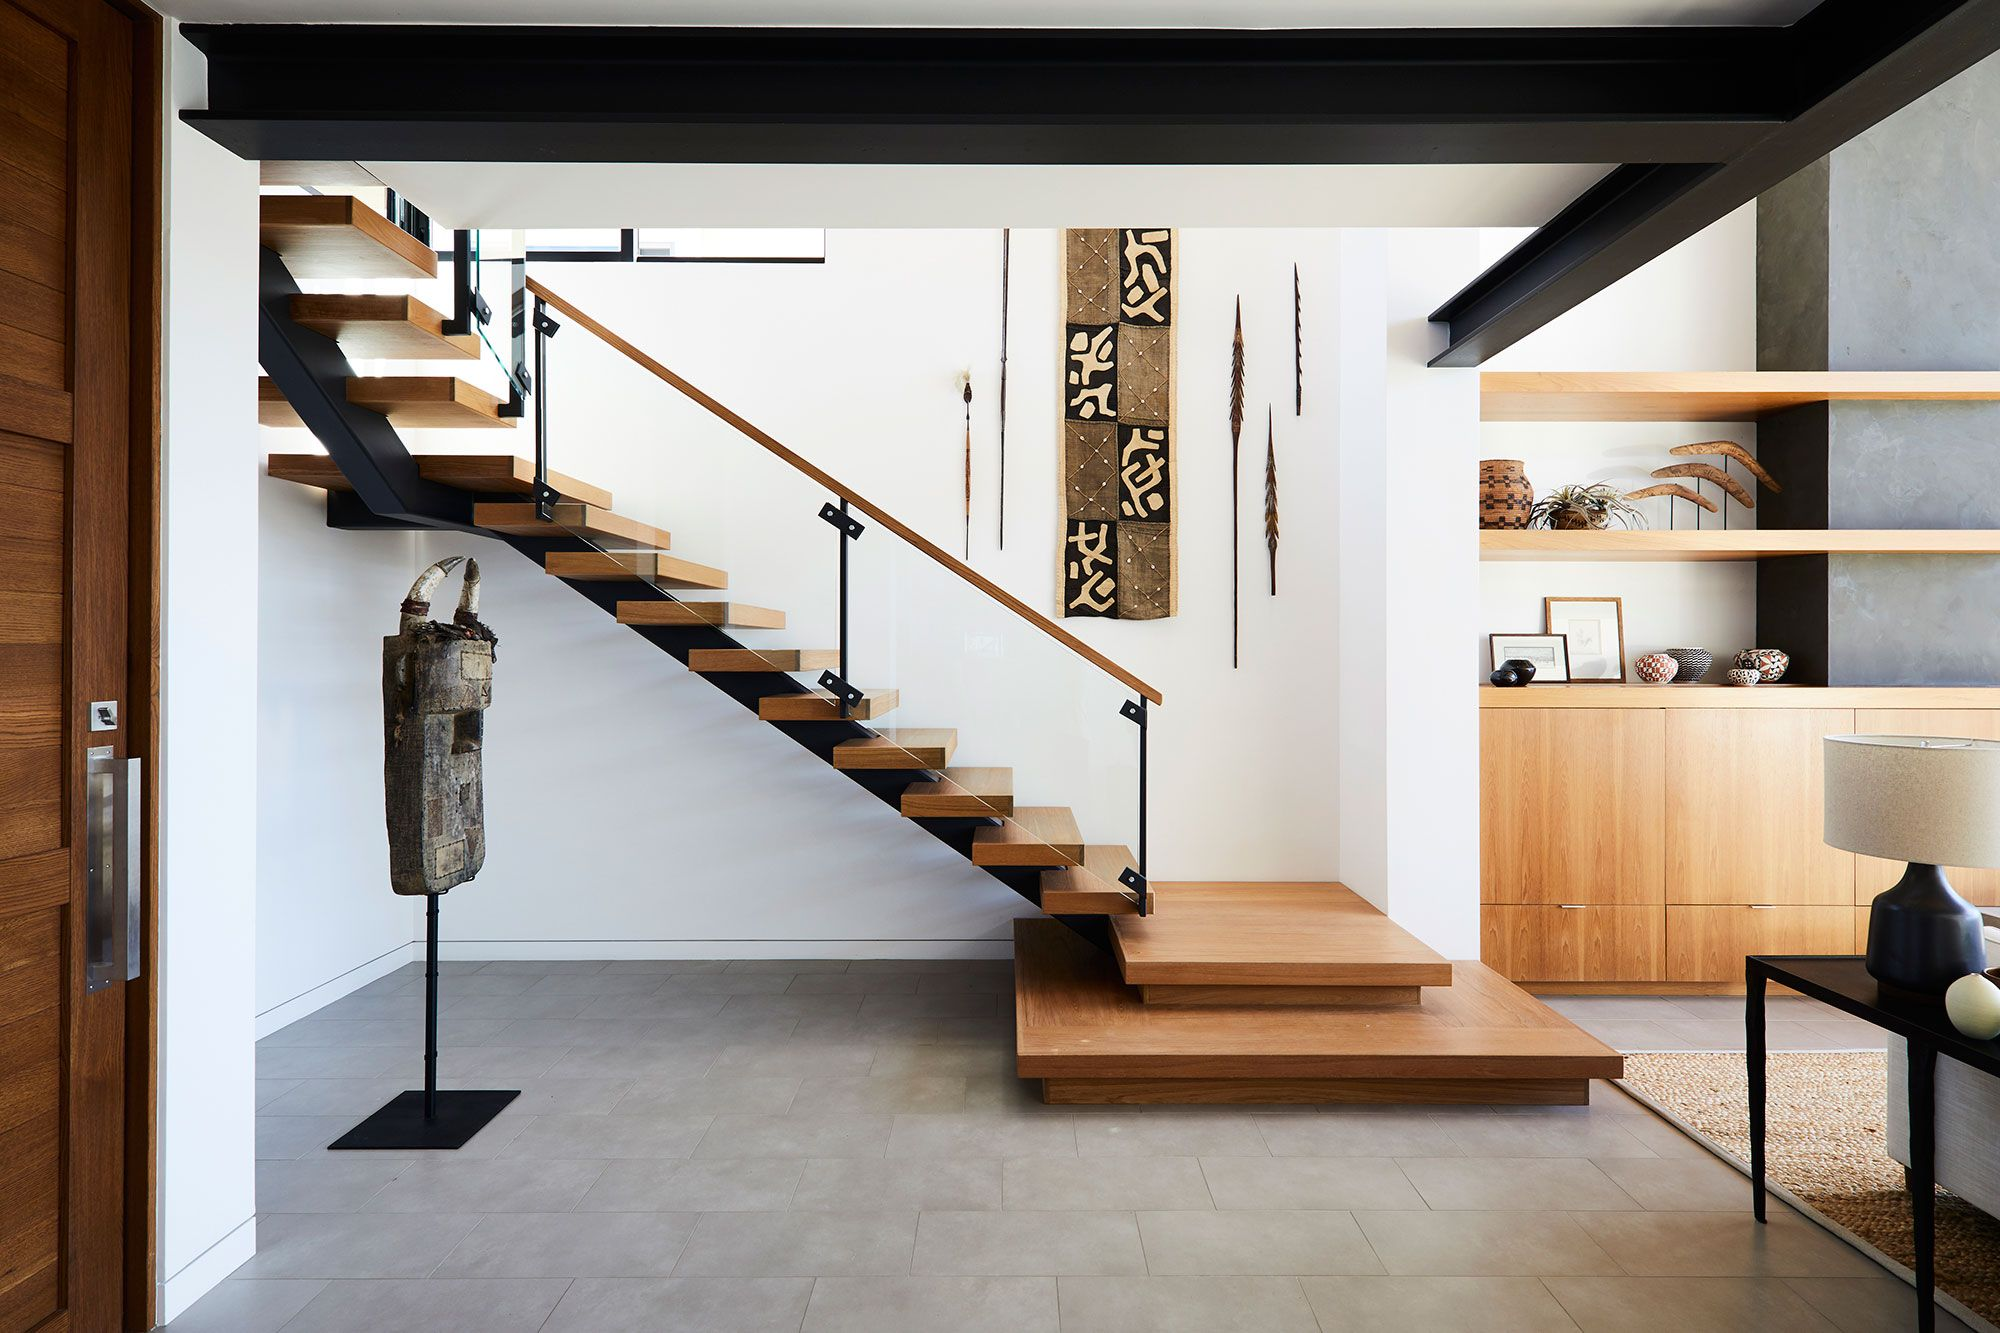 50 Staircase Design Ideas Beautiful Ways To Decorate A